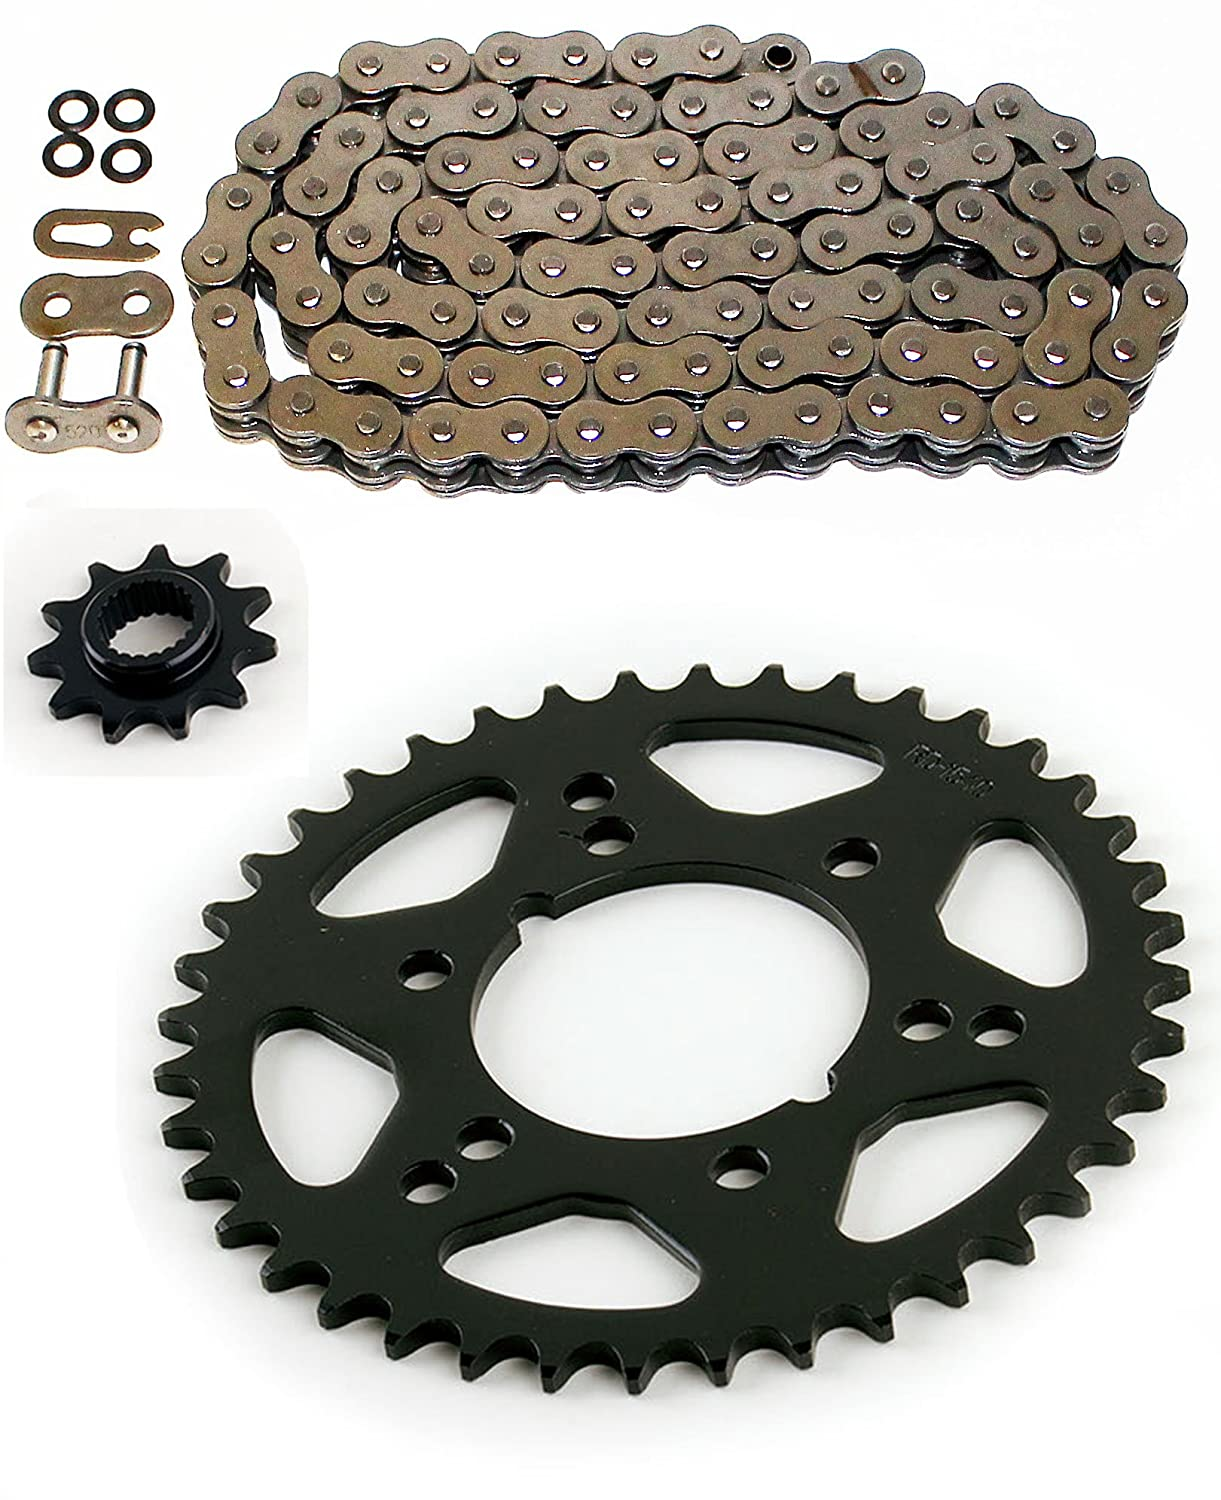 2003-2009 Polaris Trail Boss 330 O-Ring Chain Sprocket 78L Race-Driven 4333358815